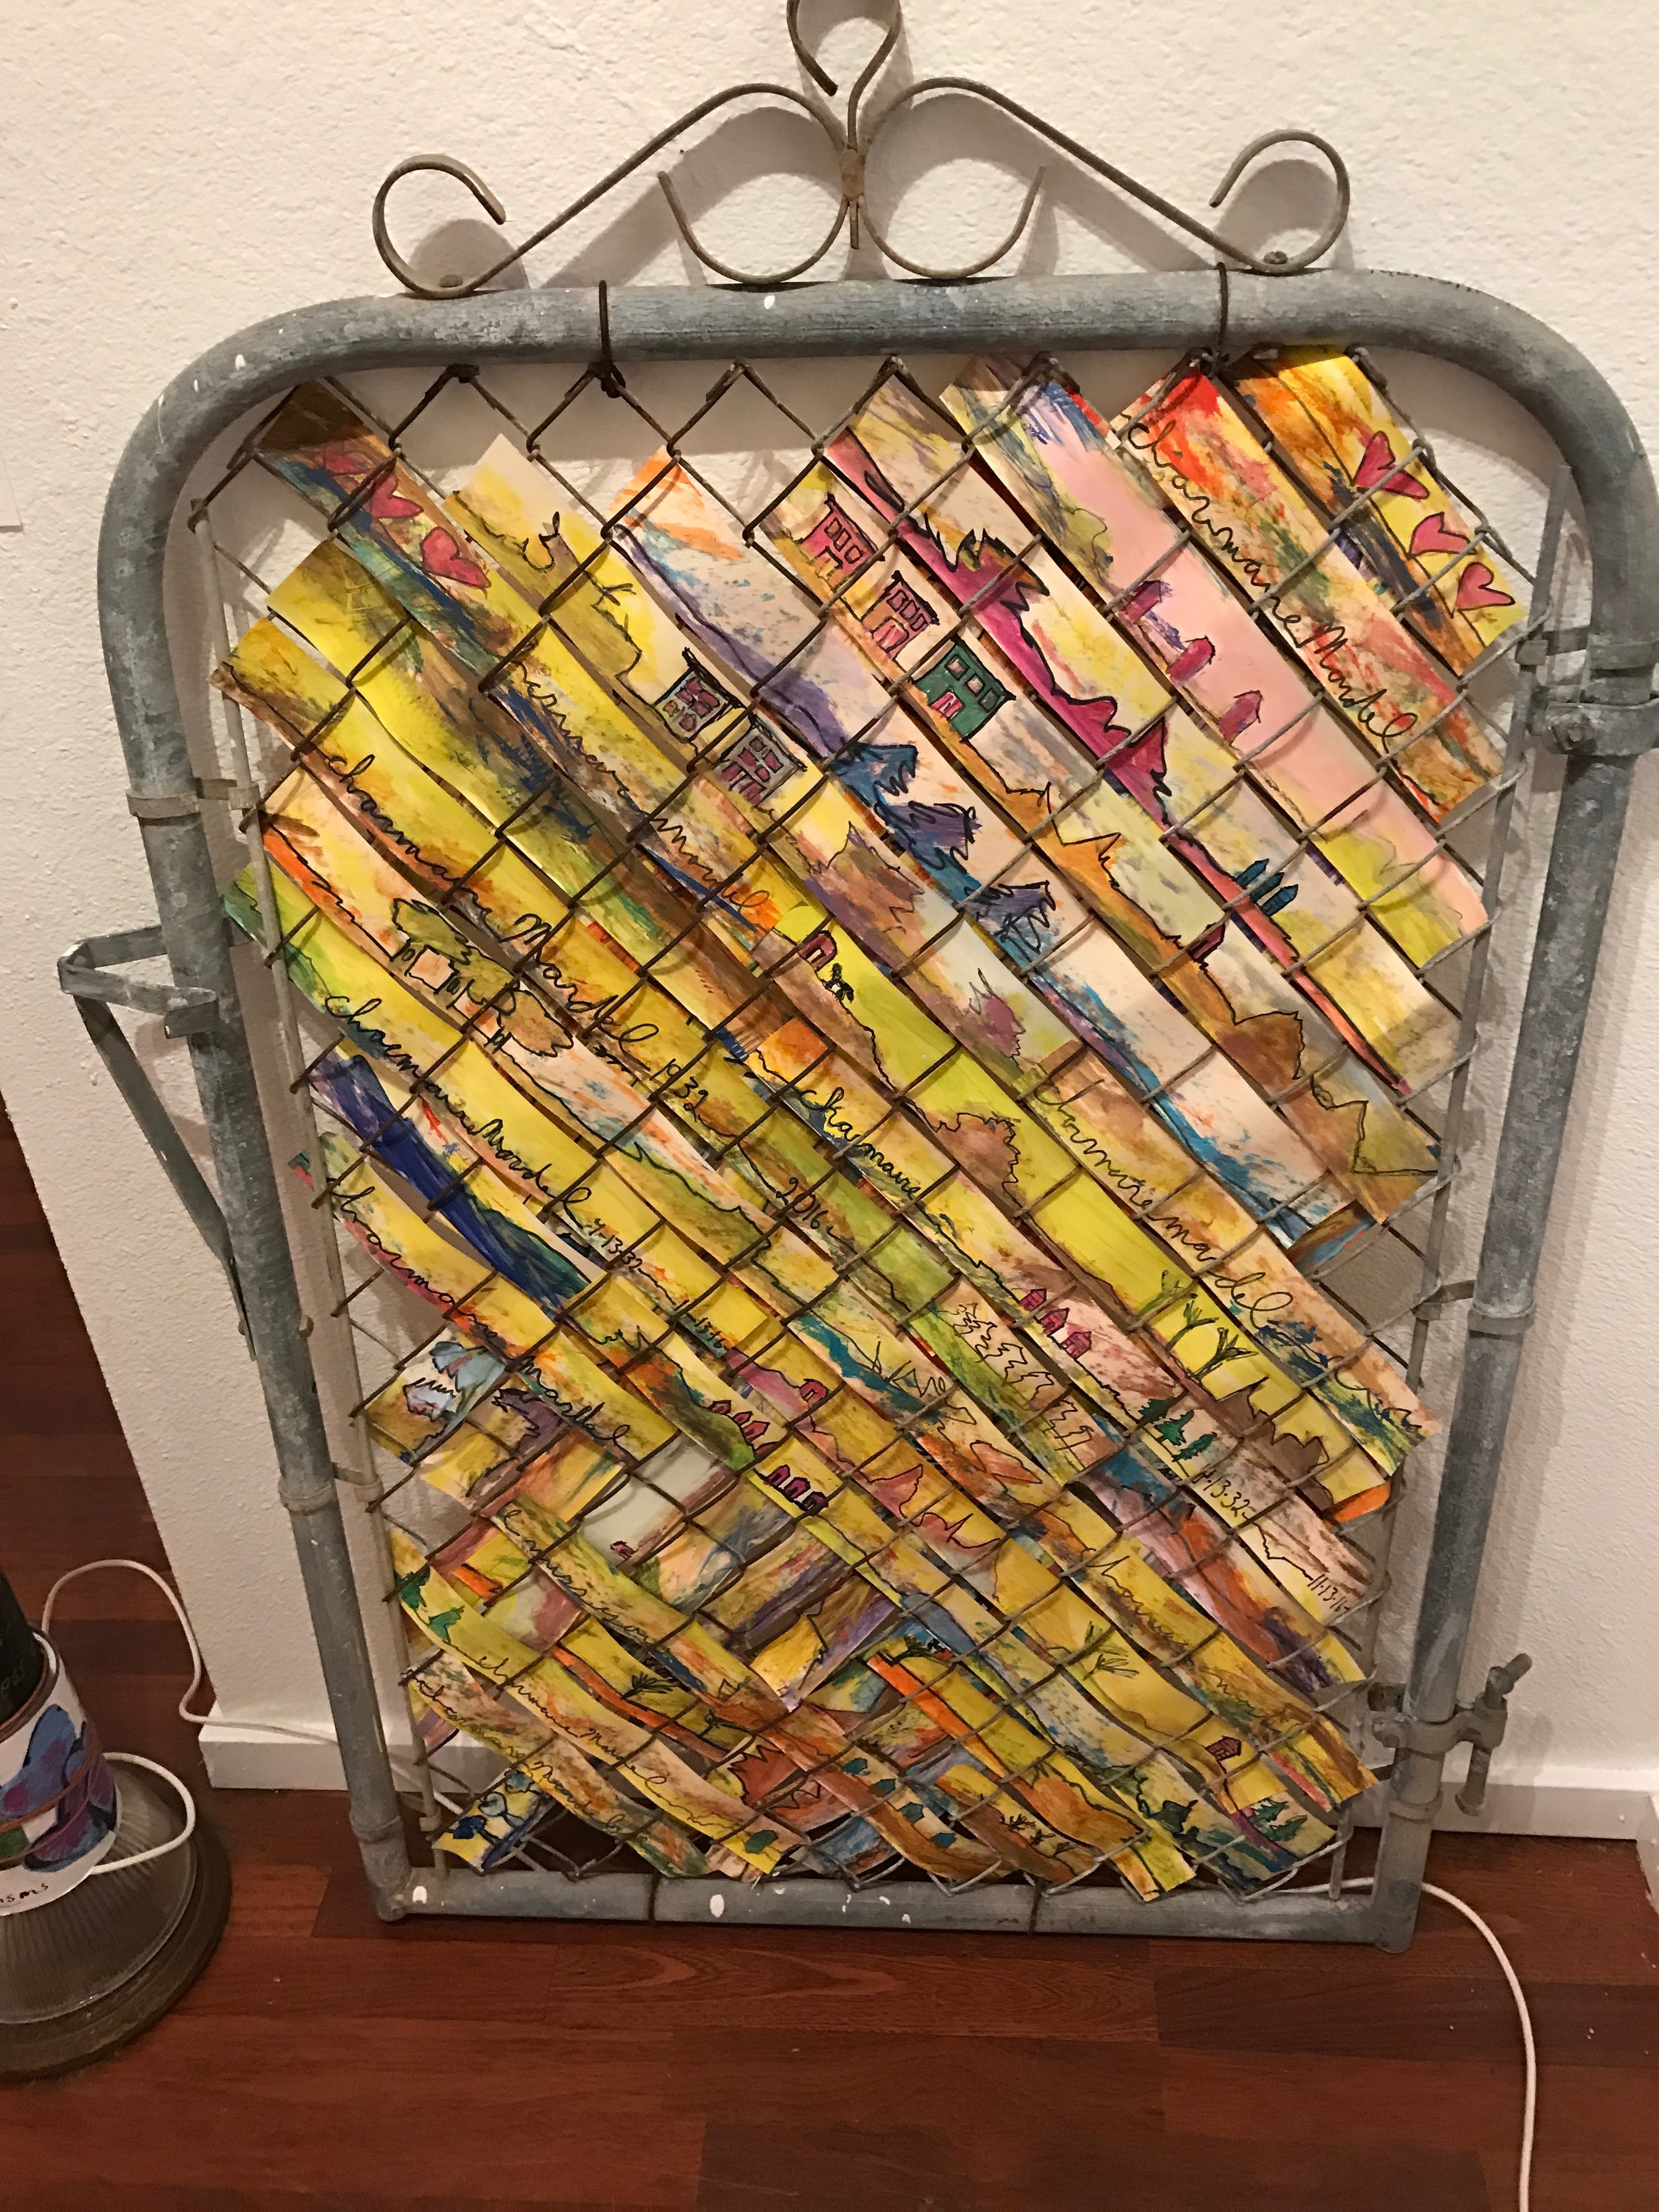 Vintage metal gate is woven with tempera on paper with landscape scenes and family mementos